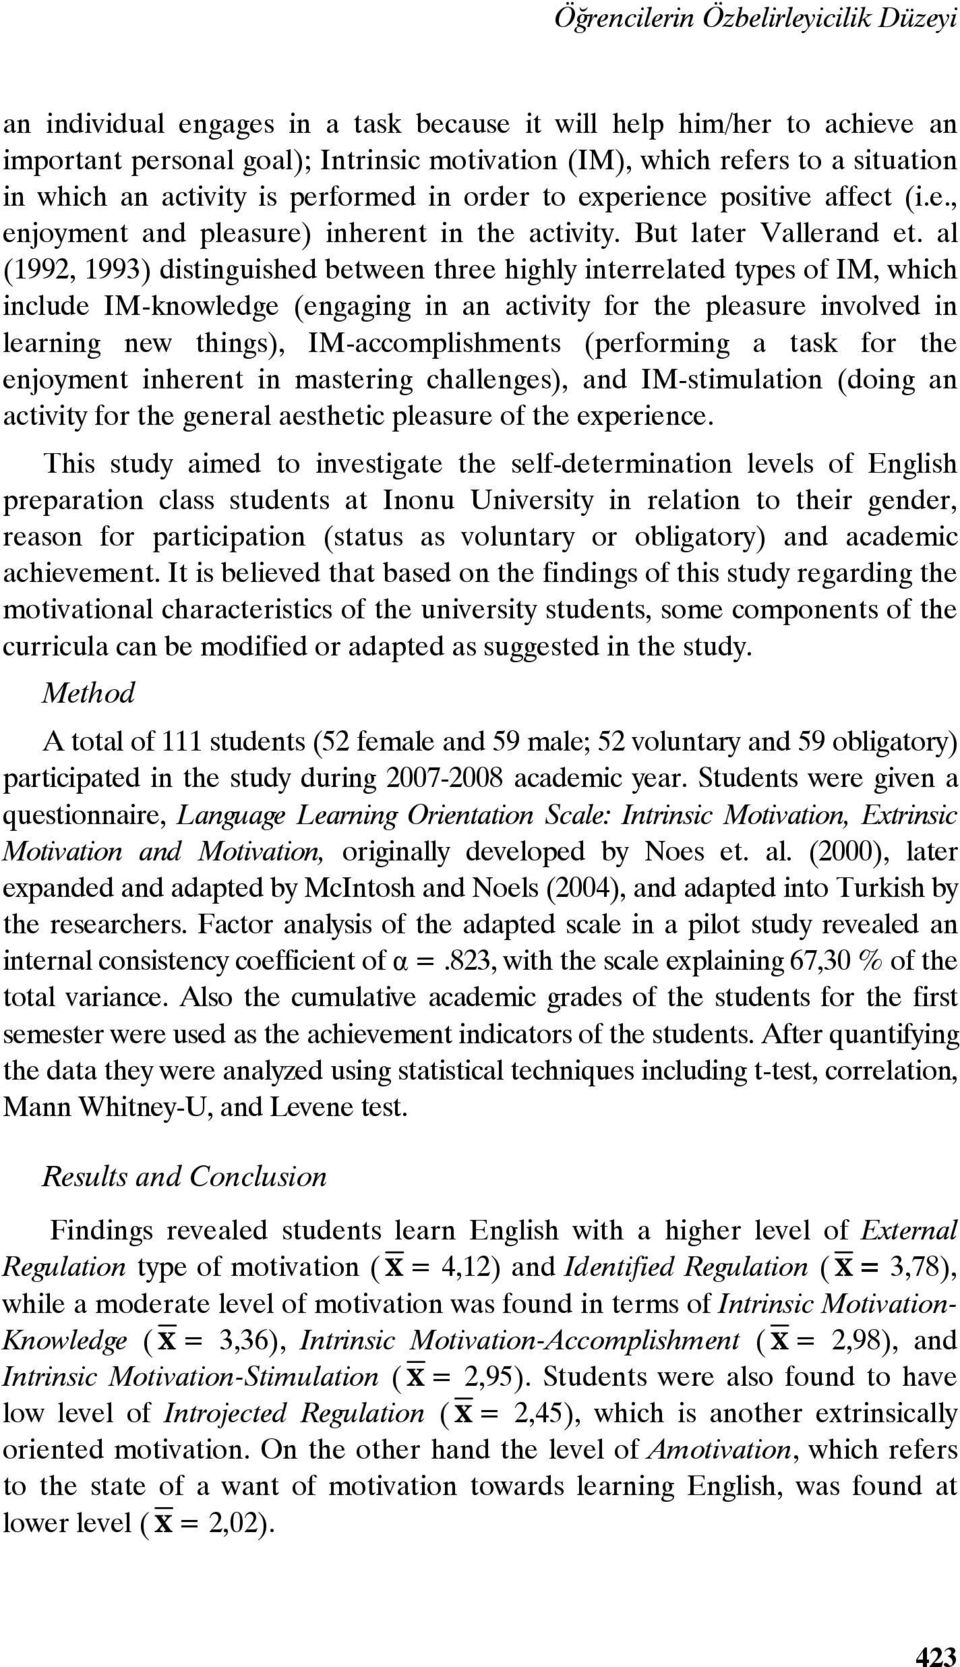 al (1992, 1993) distinguished between three highly interrelated types of IM, which include IM-knowledge (engaging in an activity for the pleasure involved in learning new things), IM-accomplishments